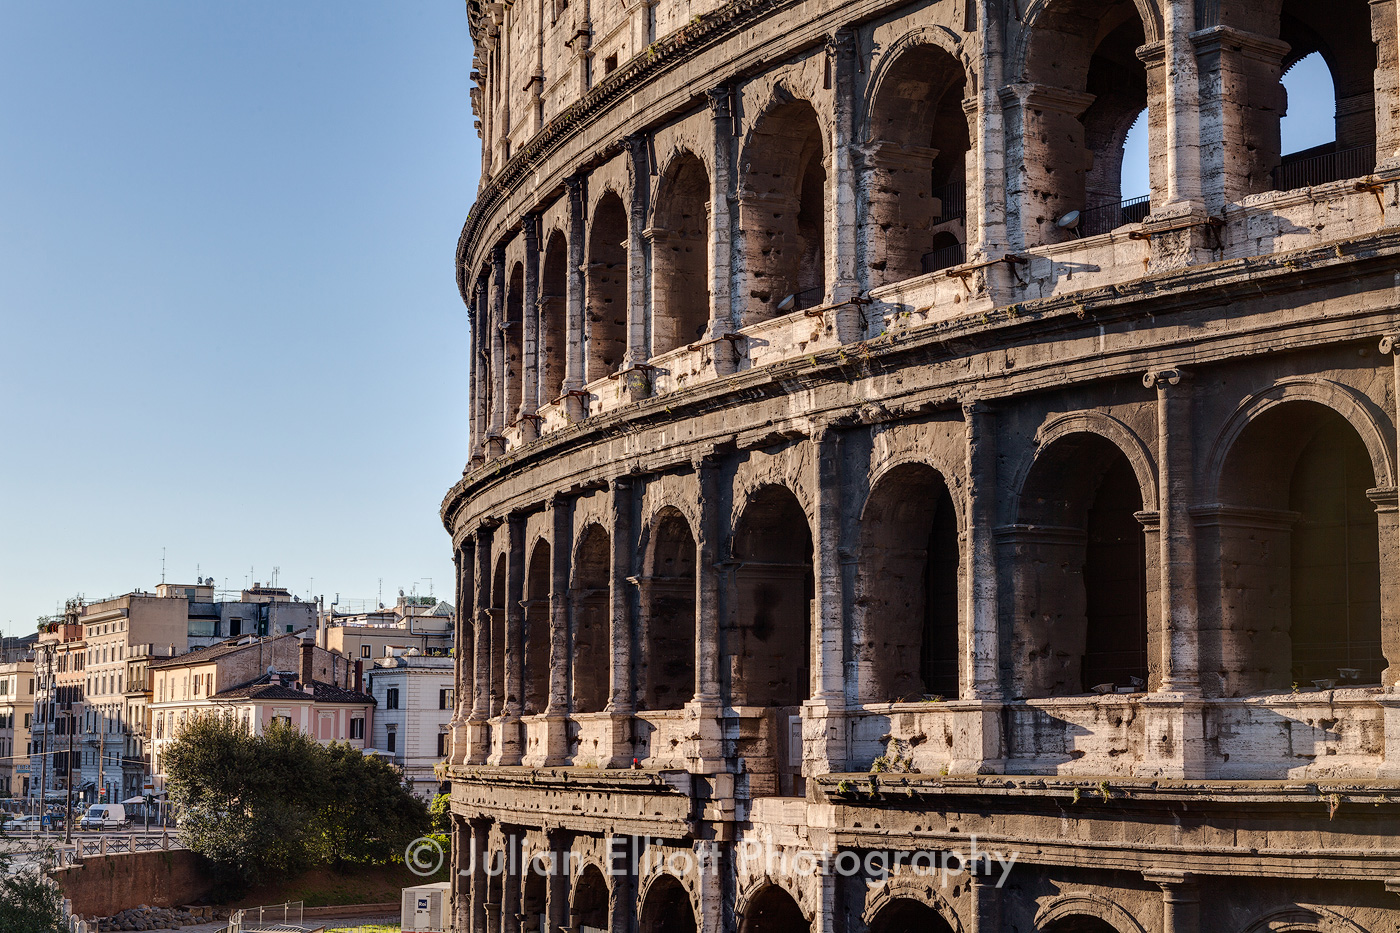 The Roman Colosseum in Rome.